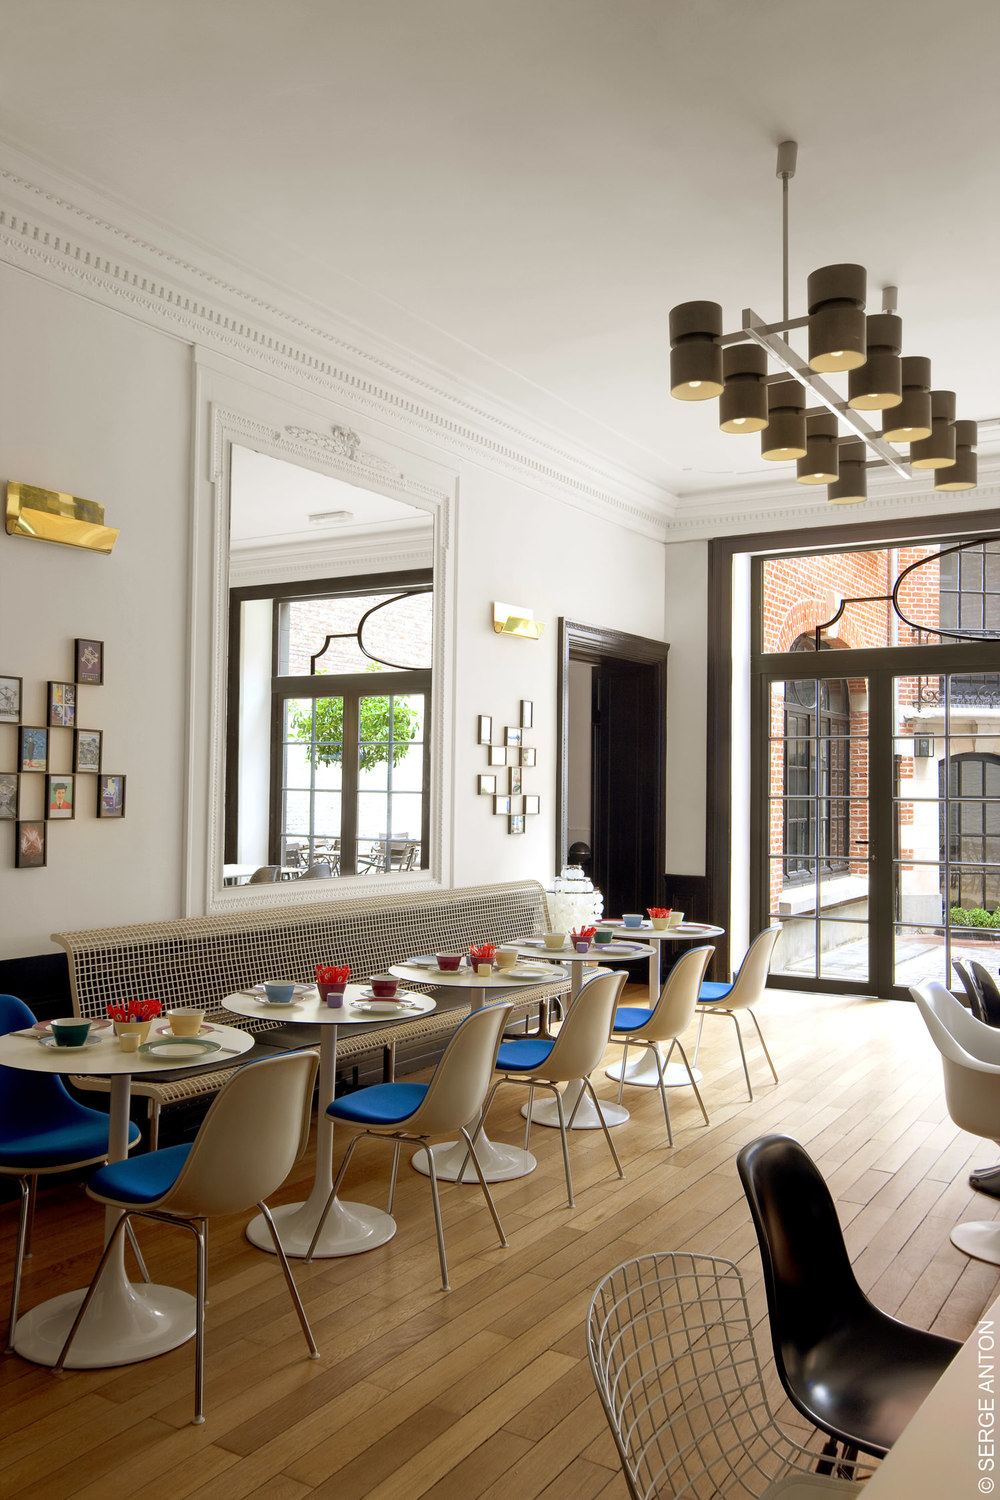 Hotel-Design-Brussels-Breakfast-Room.jpg